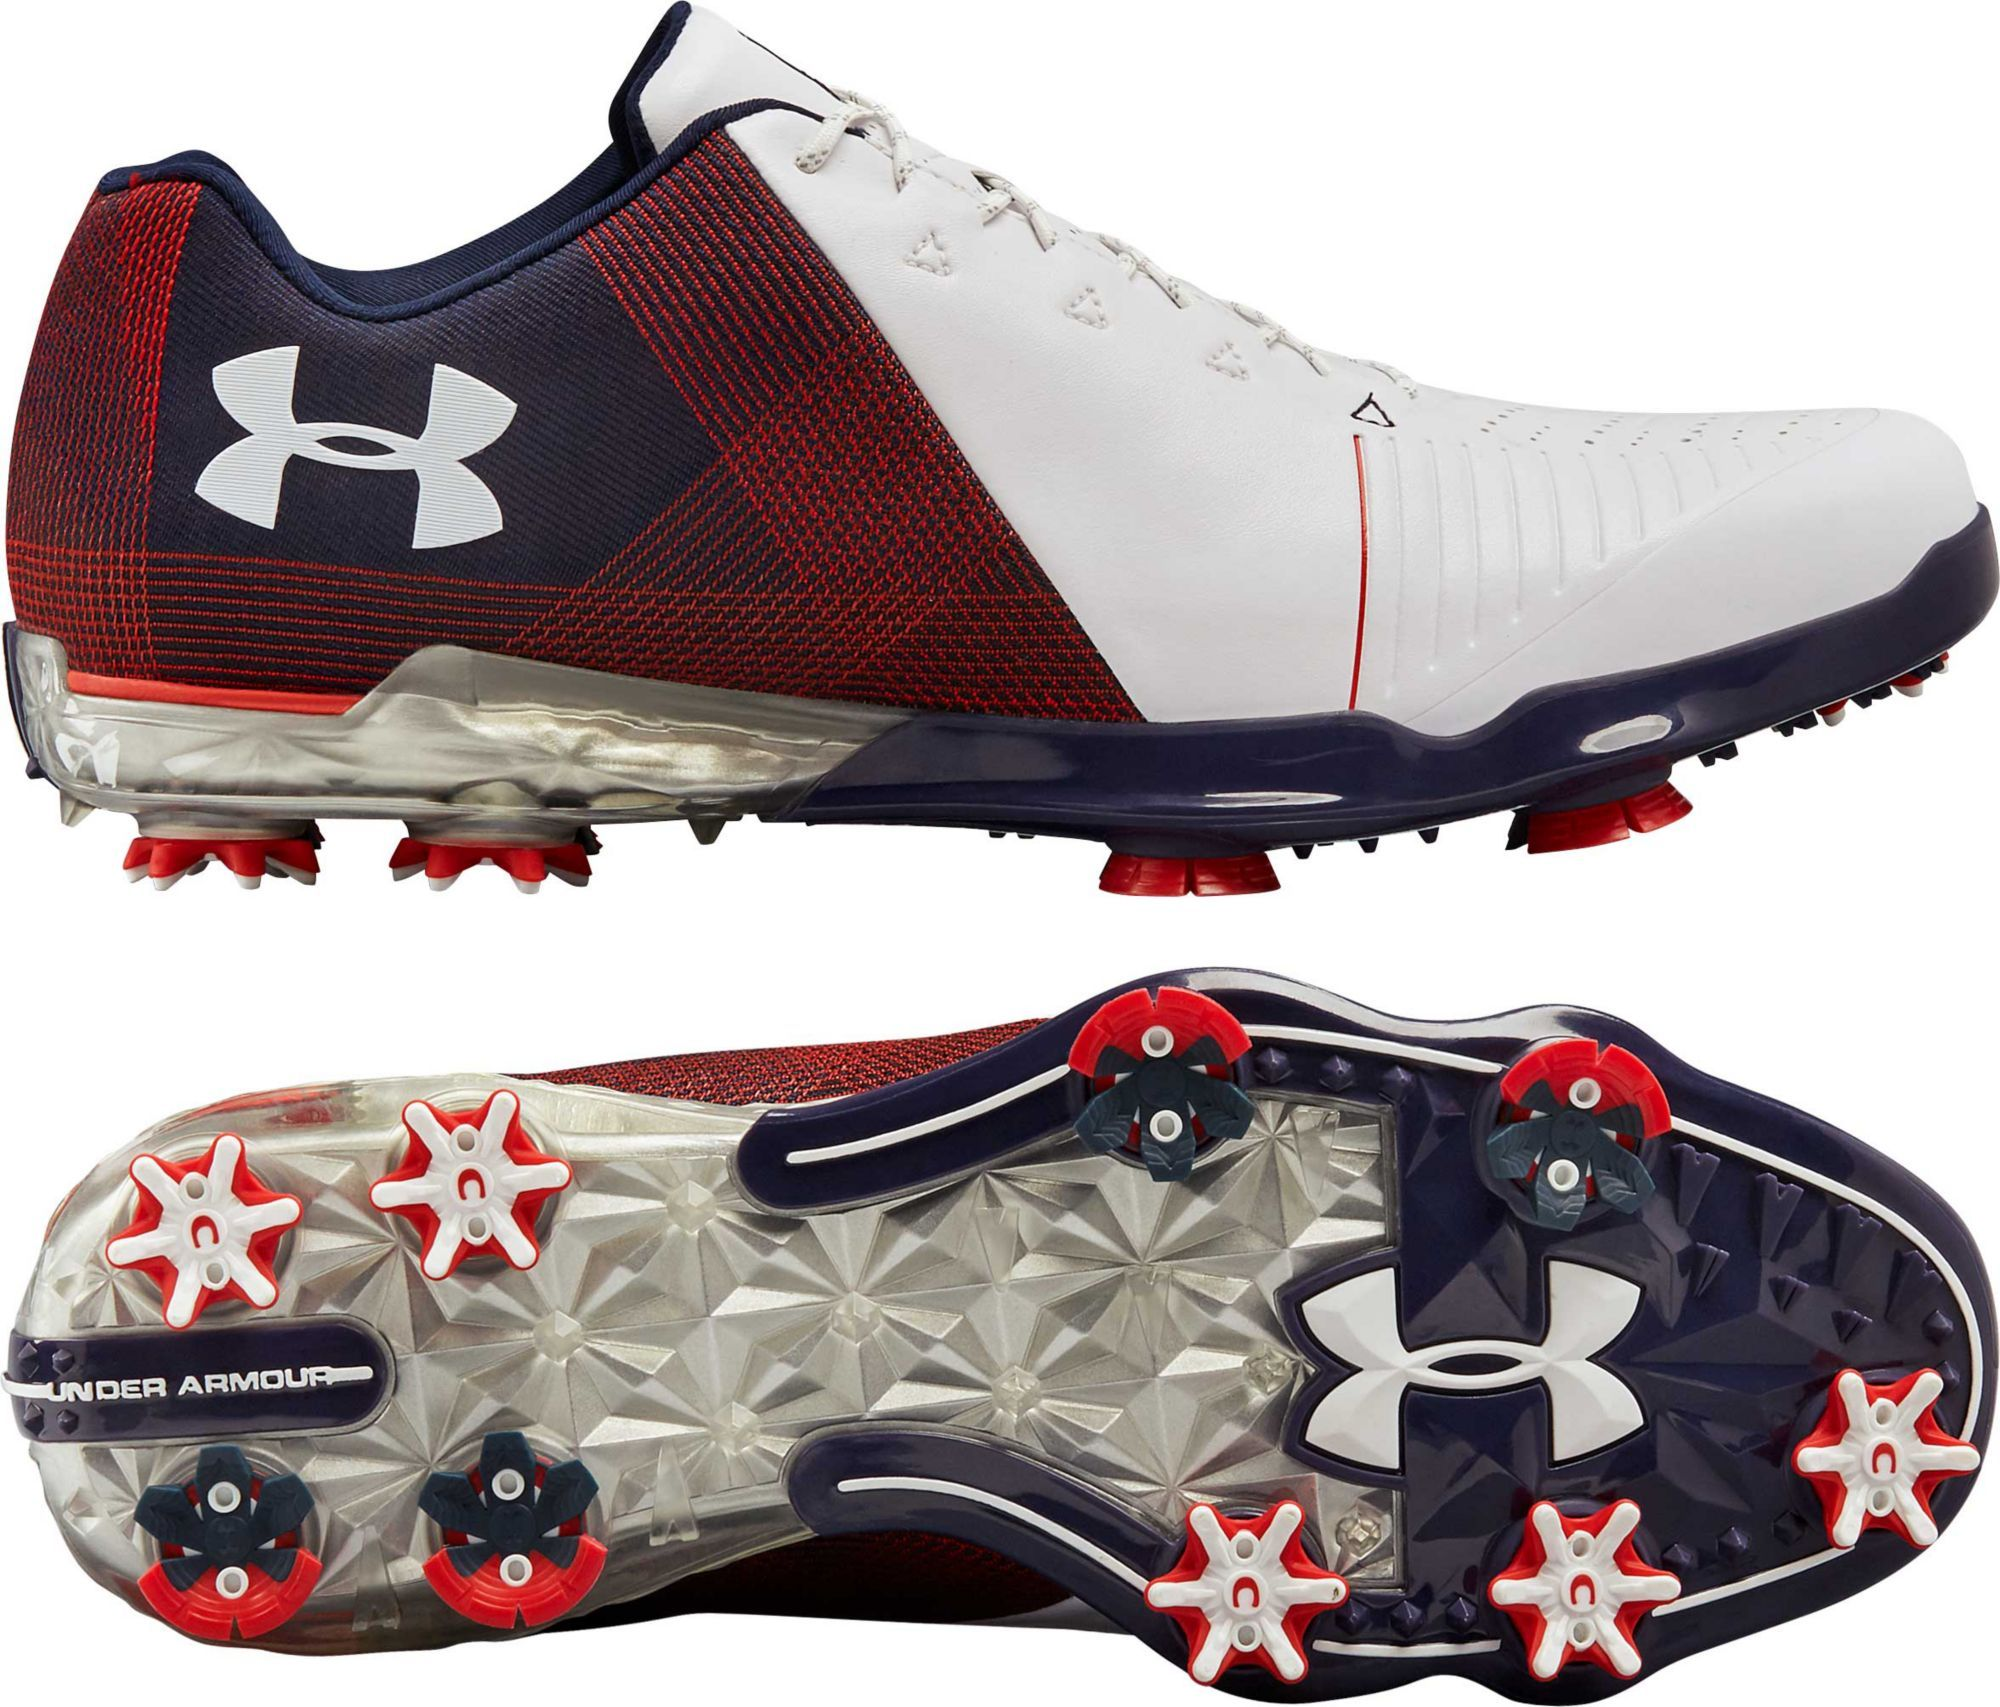 e08bff11aa1 Under Armour Men's Spieth 2 USA Edition Golf Shoes | Products | Golf ...